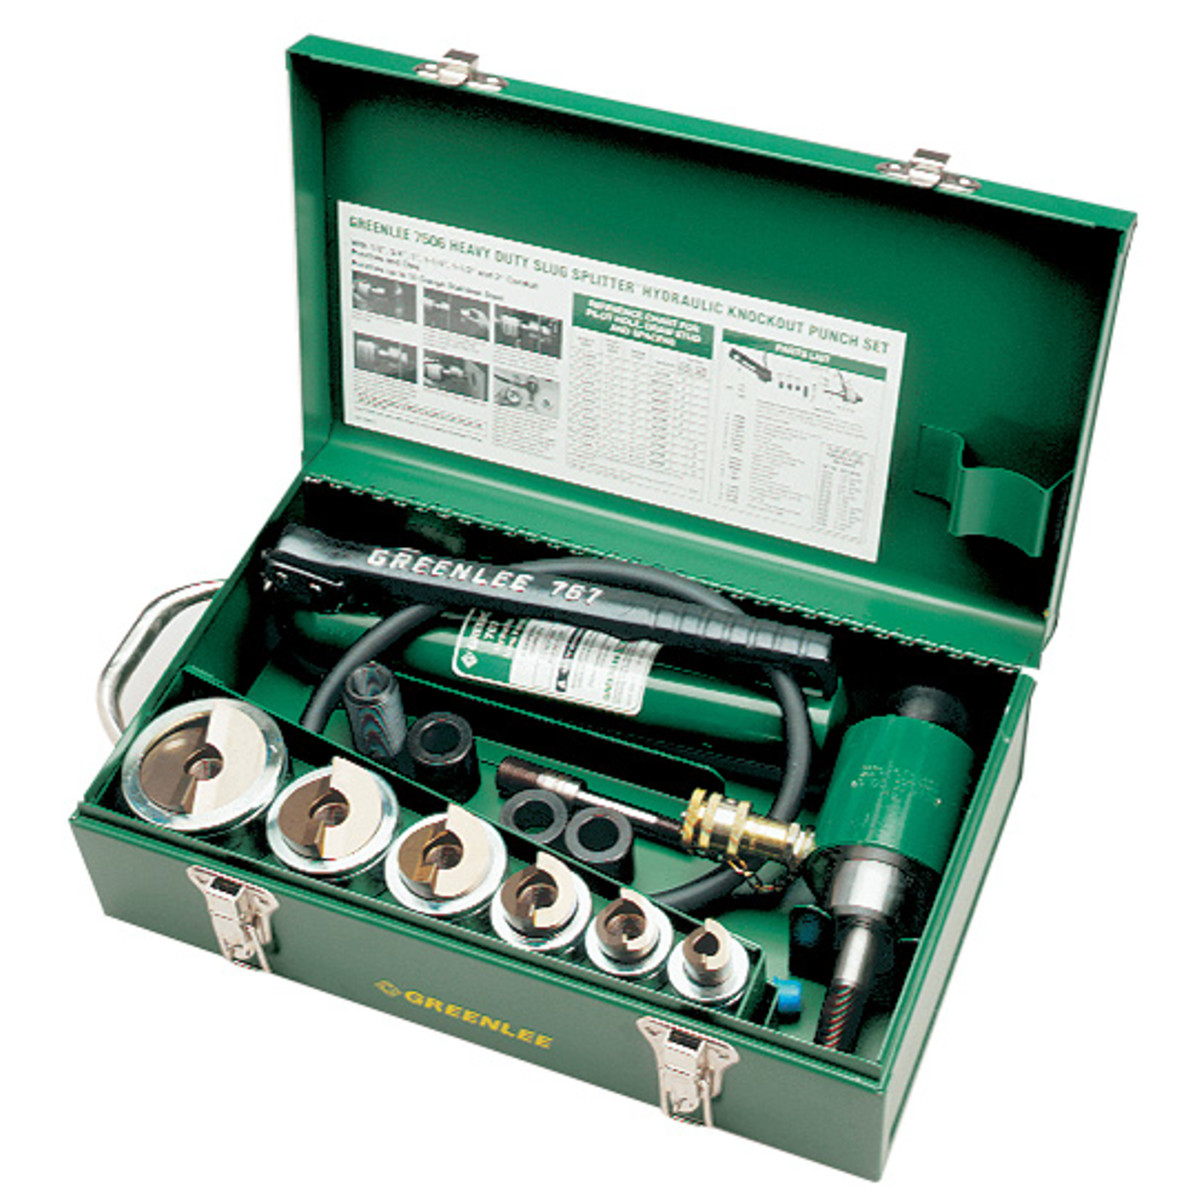 "Greenlee 7506 Slug-Splitter SC Knockout Punch Kit w/ Hydraulic Ram & Hand Pump, 1/2"" - 2"" Conduit"